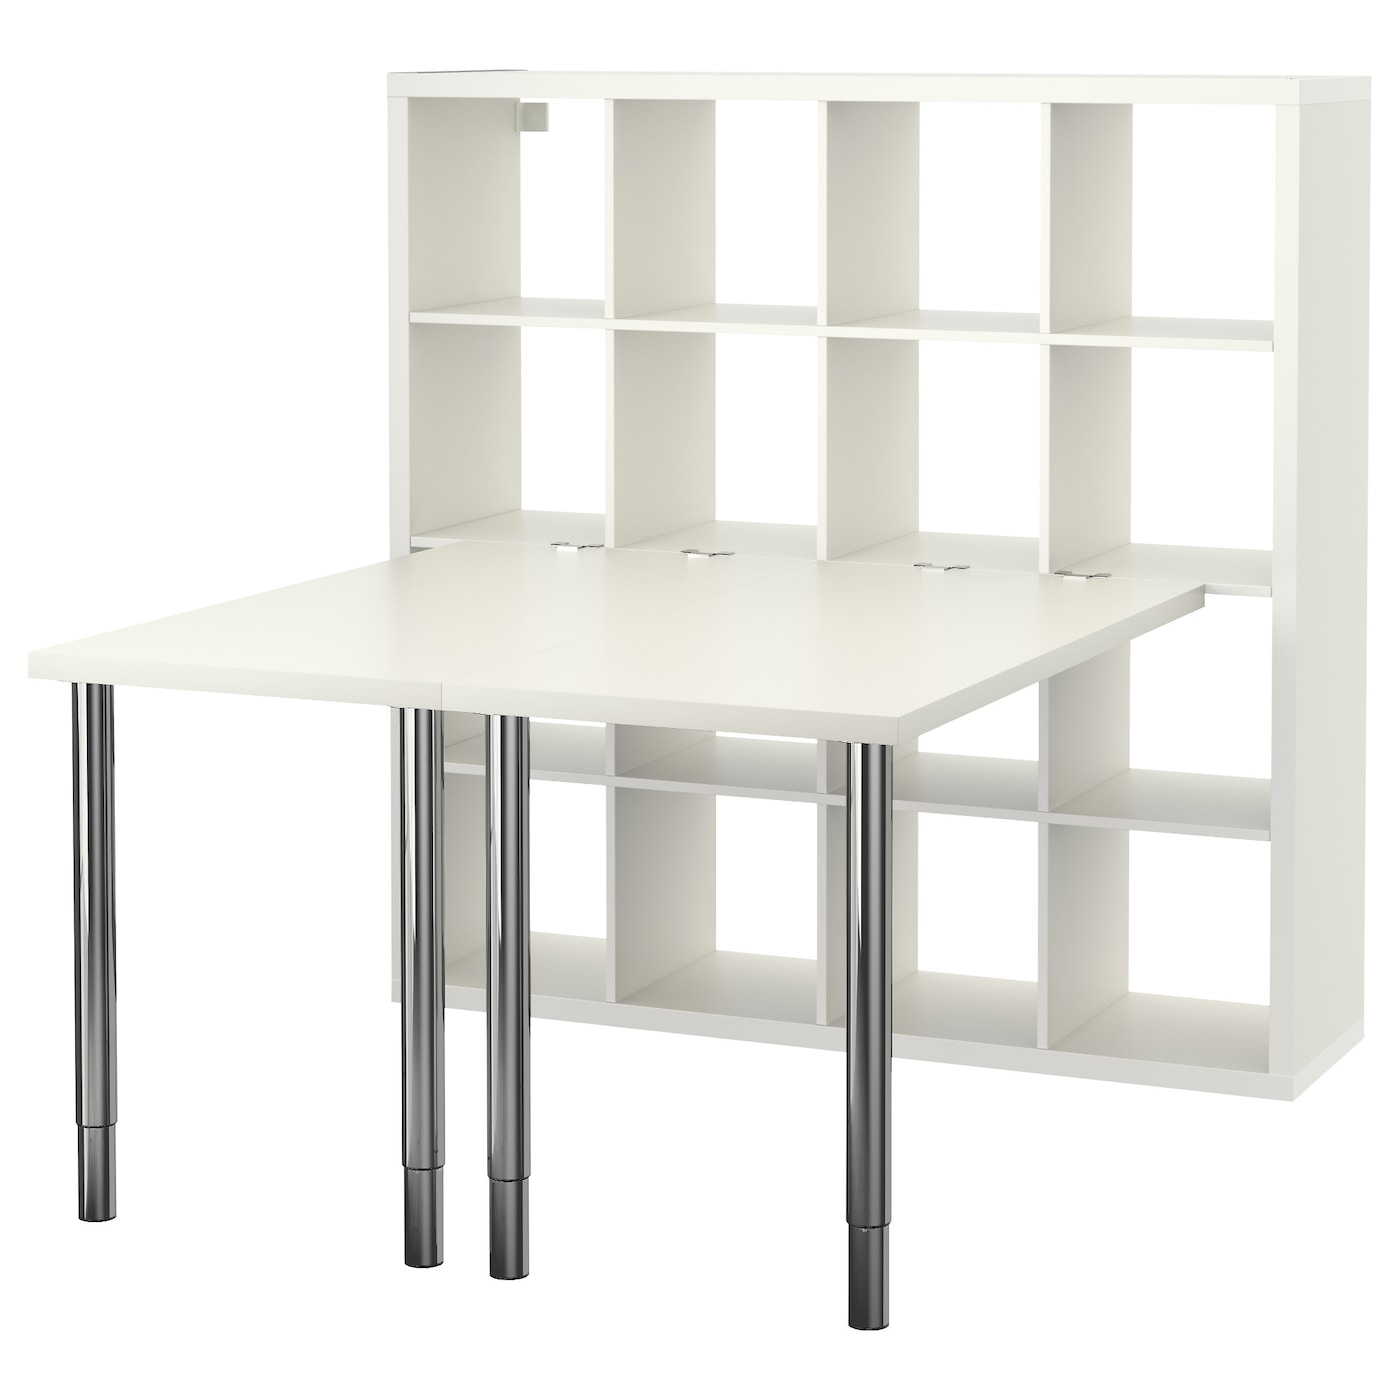 Kallax Desk Combination White 147×147 Cm Ikea # Bureau Kallax